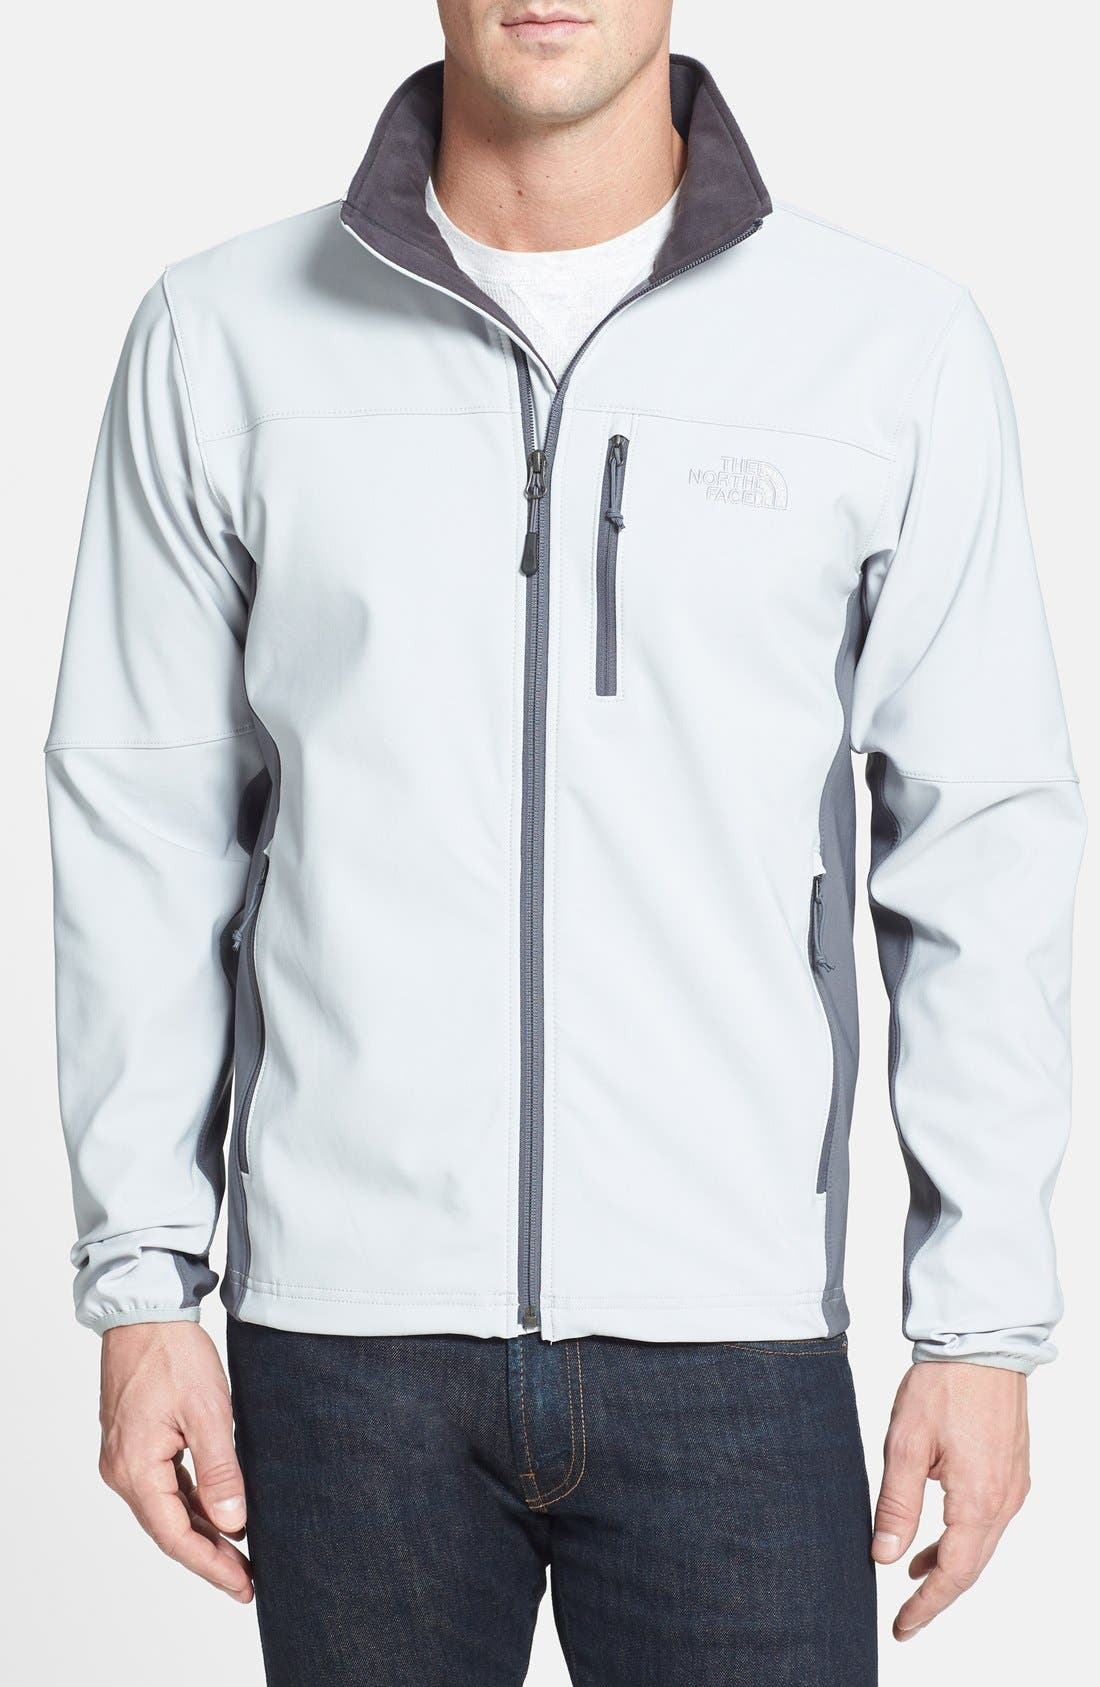 Main Image - The North Face 'Apex Pneumatic' Jacket